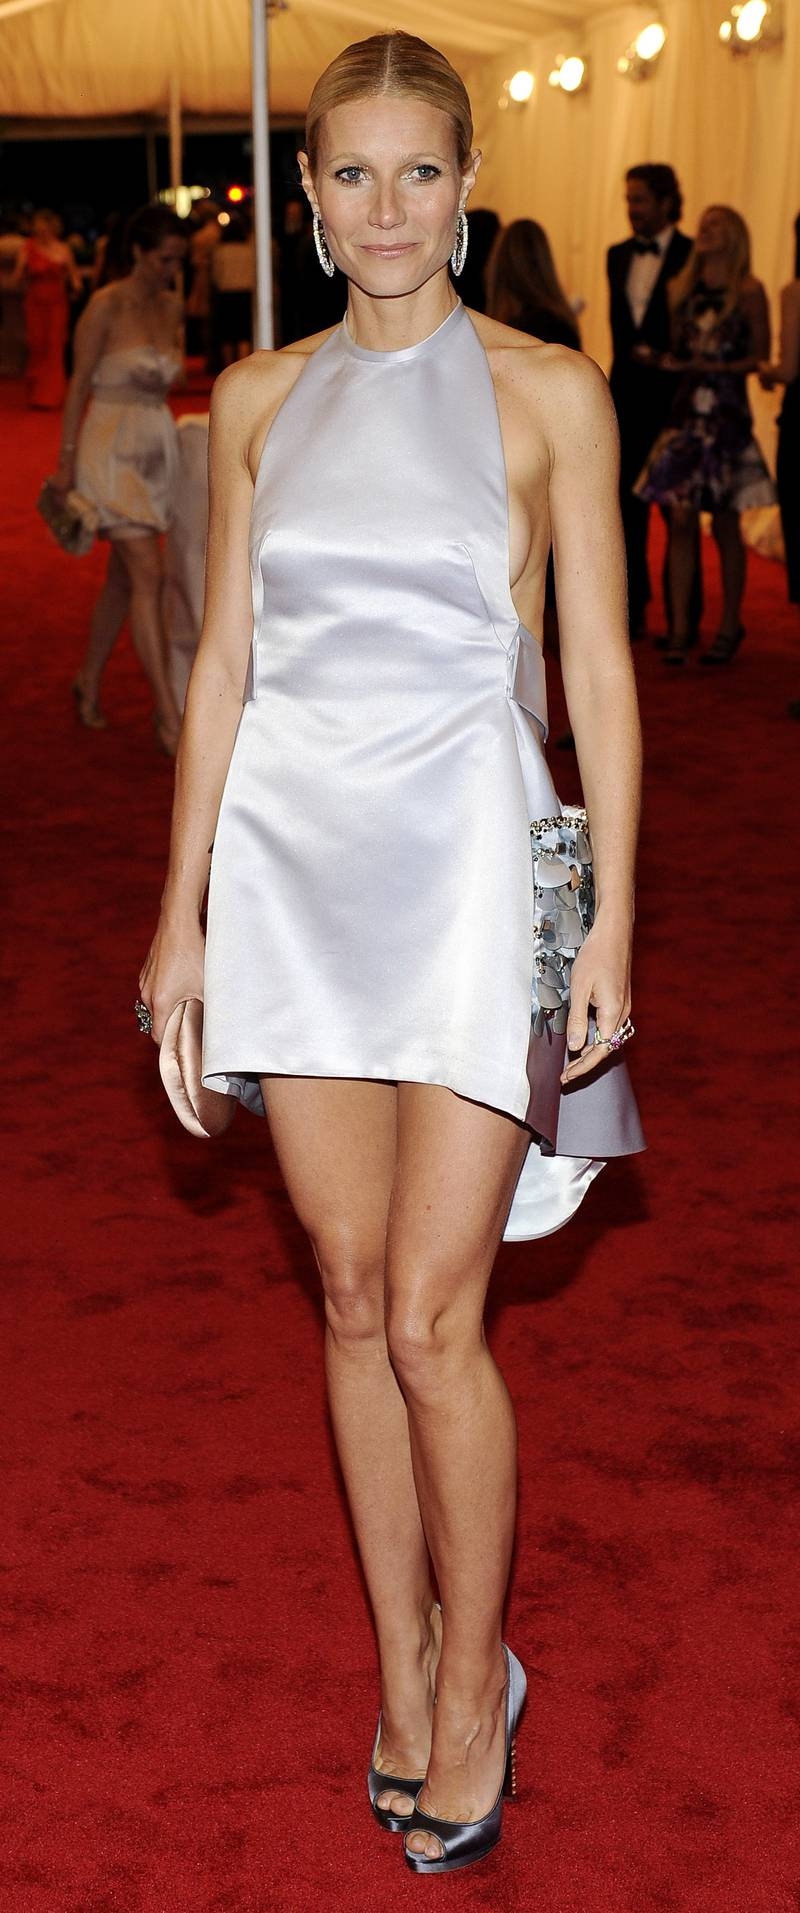 epa03210095 US actress Gwyneth Paltrow arrives for the Metropolitan Museum of Art's 2012 Costume Institute Gala benefit at the Metropolitan Museum of Art in New York, New York, USA, 07 May 2012.  EPA/JUSTIN LANE